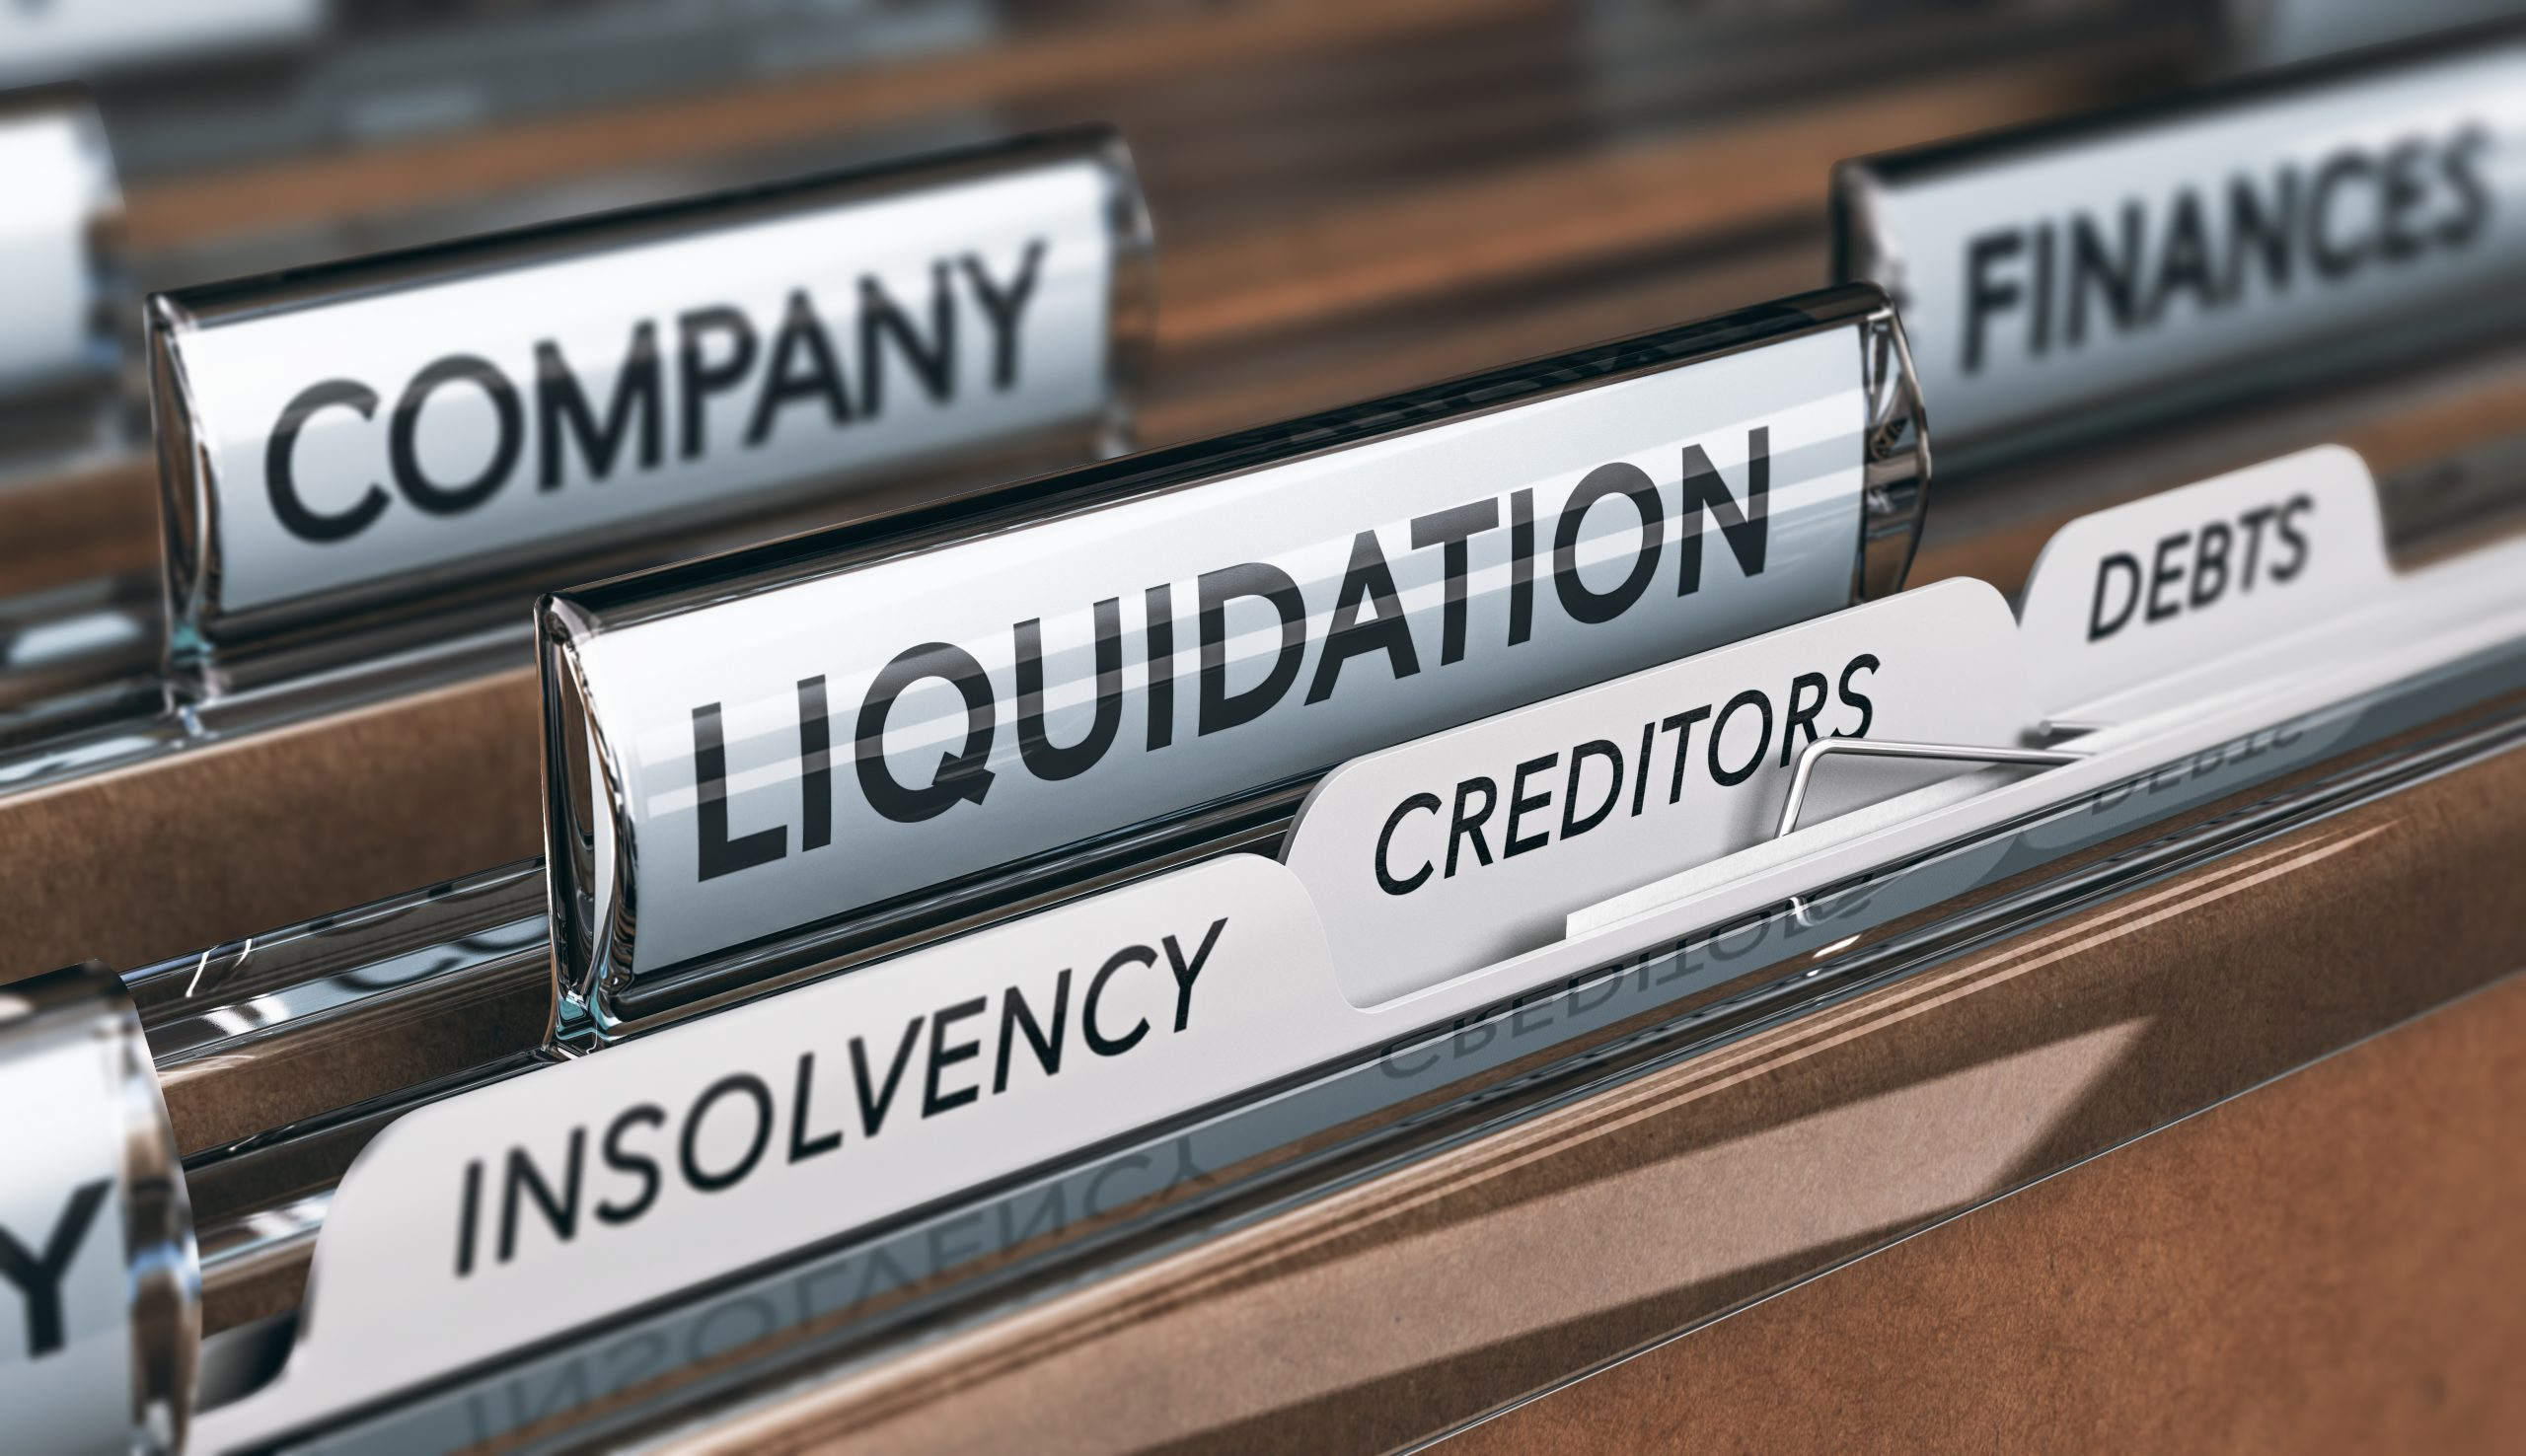 Types of Insolvent Liquidations